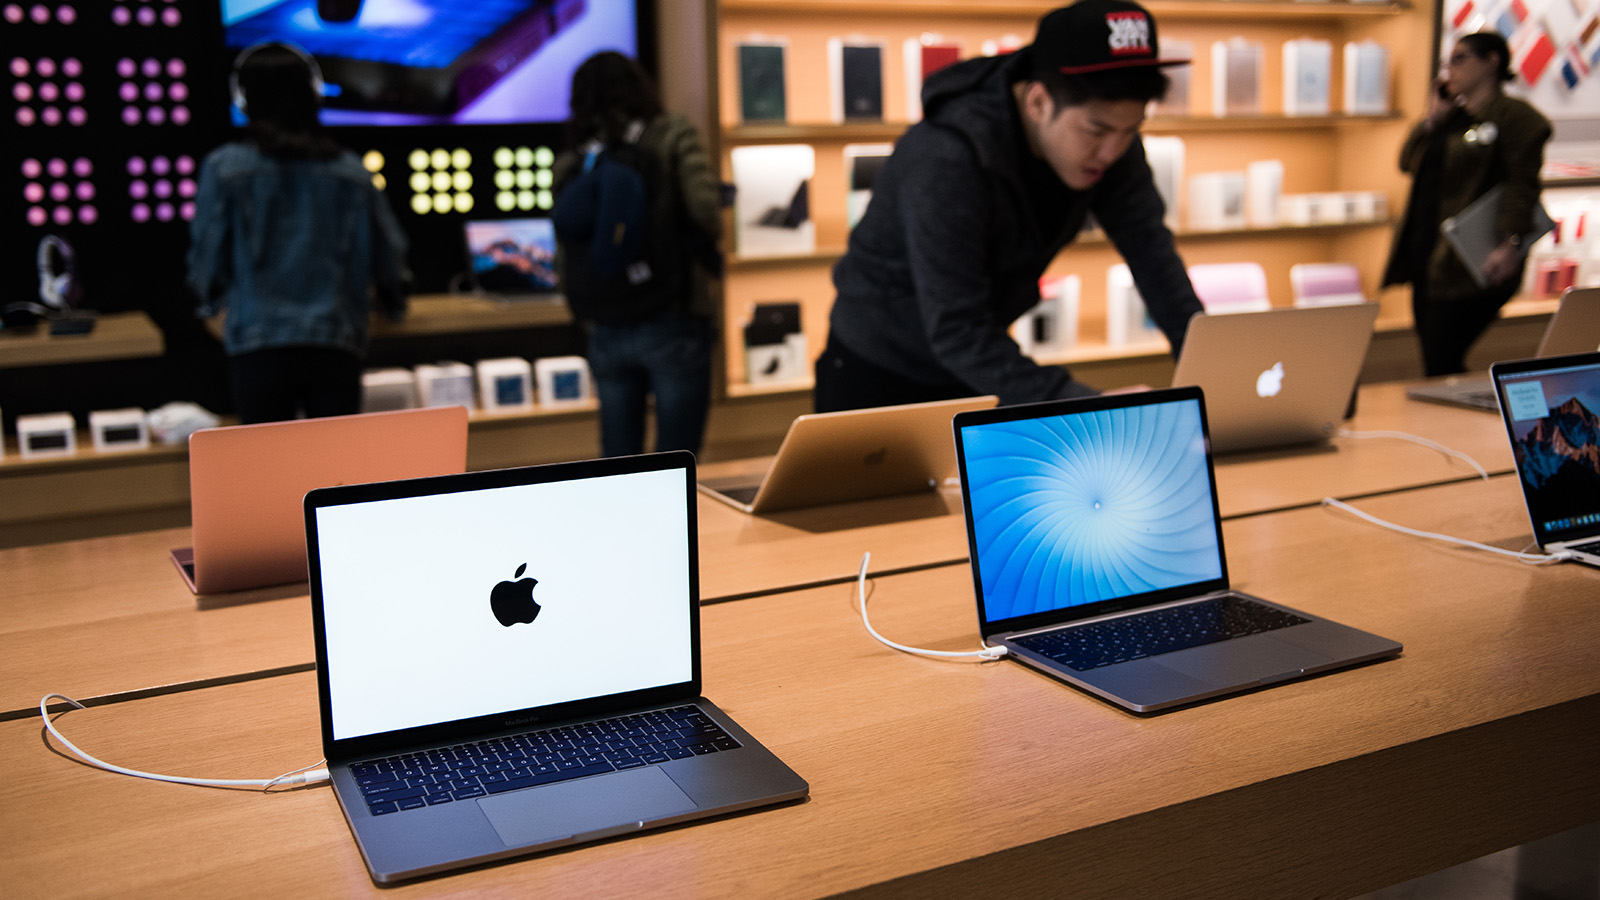 That new MacBook Black Friday deal might be harder to get than ever in 2021